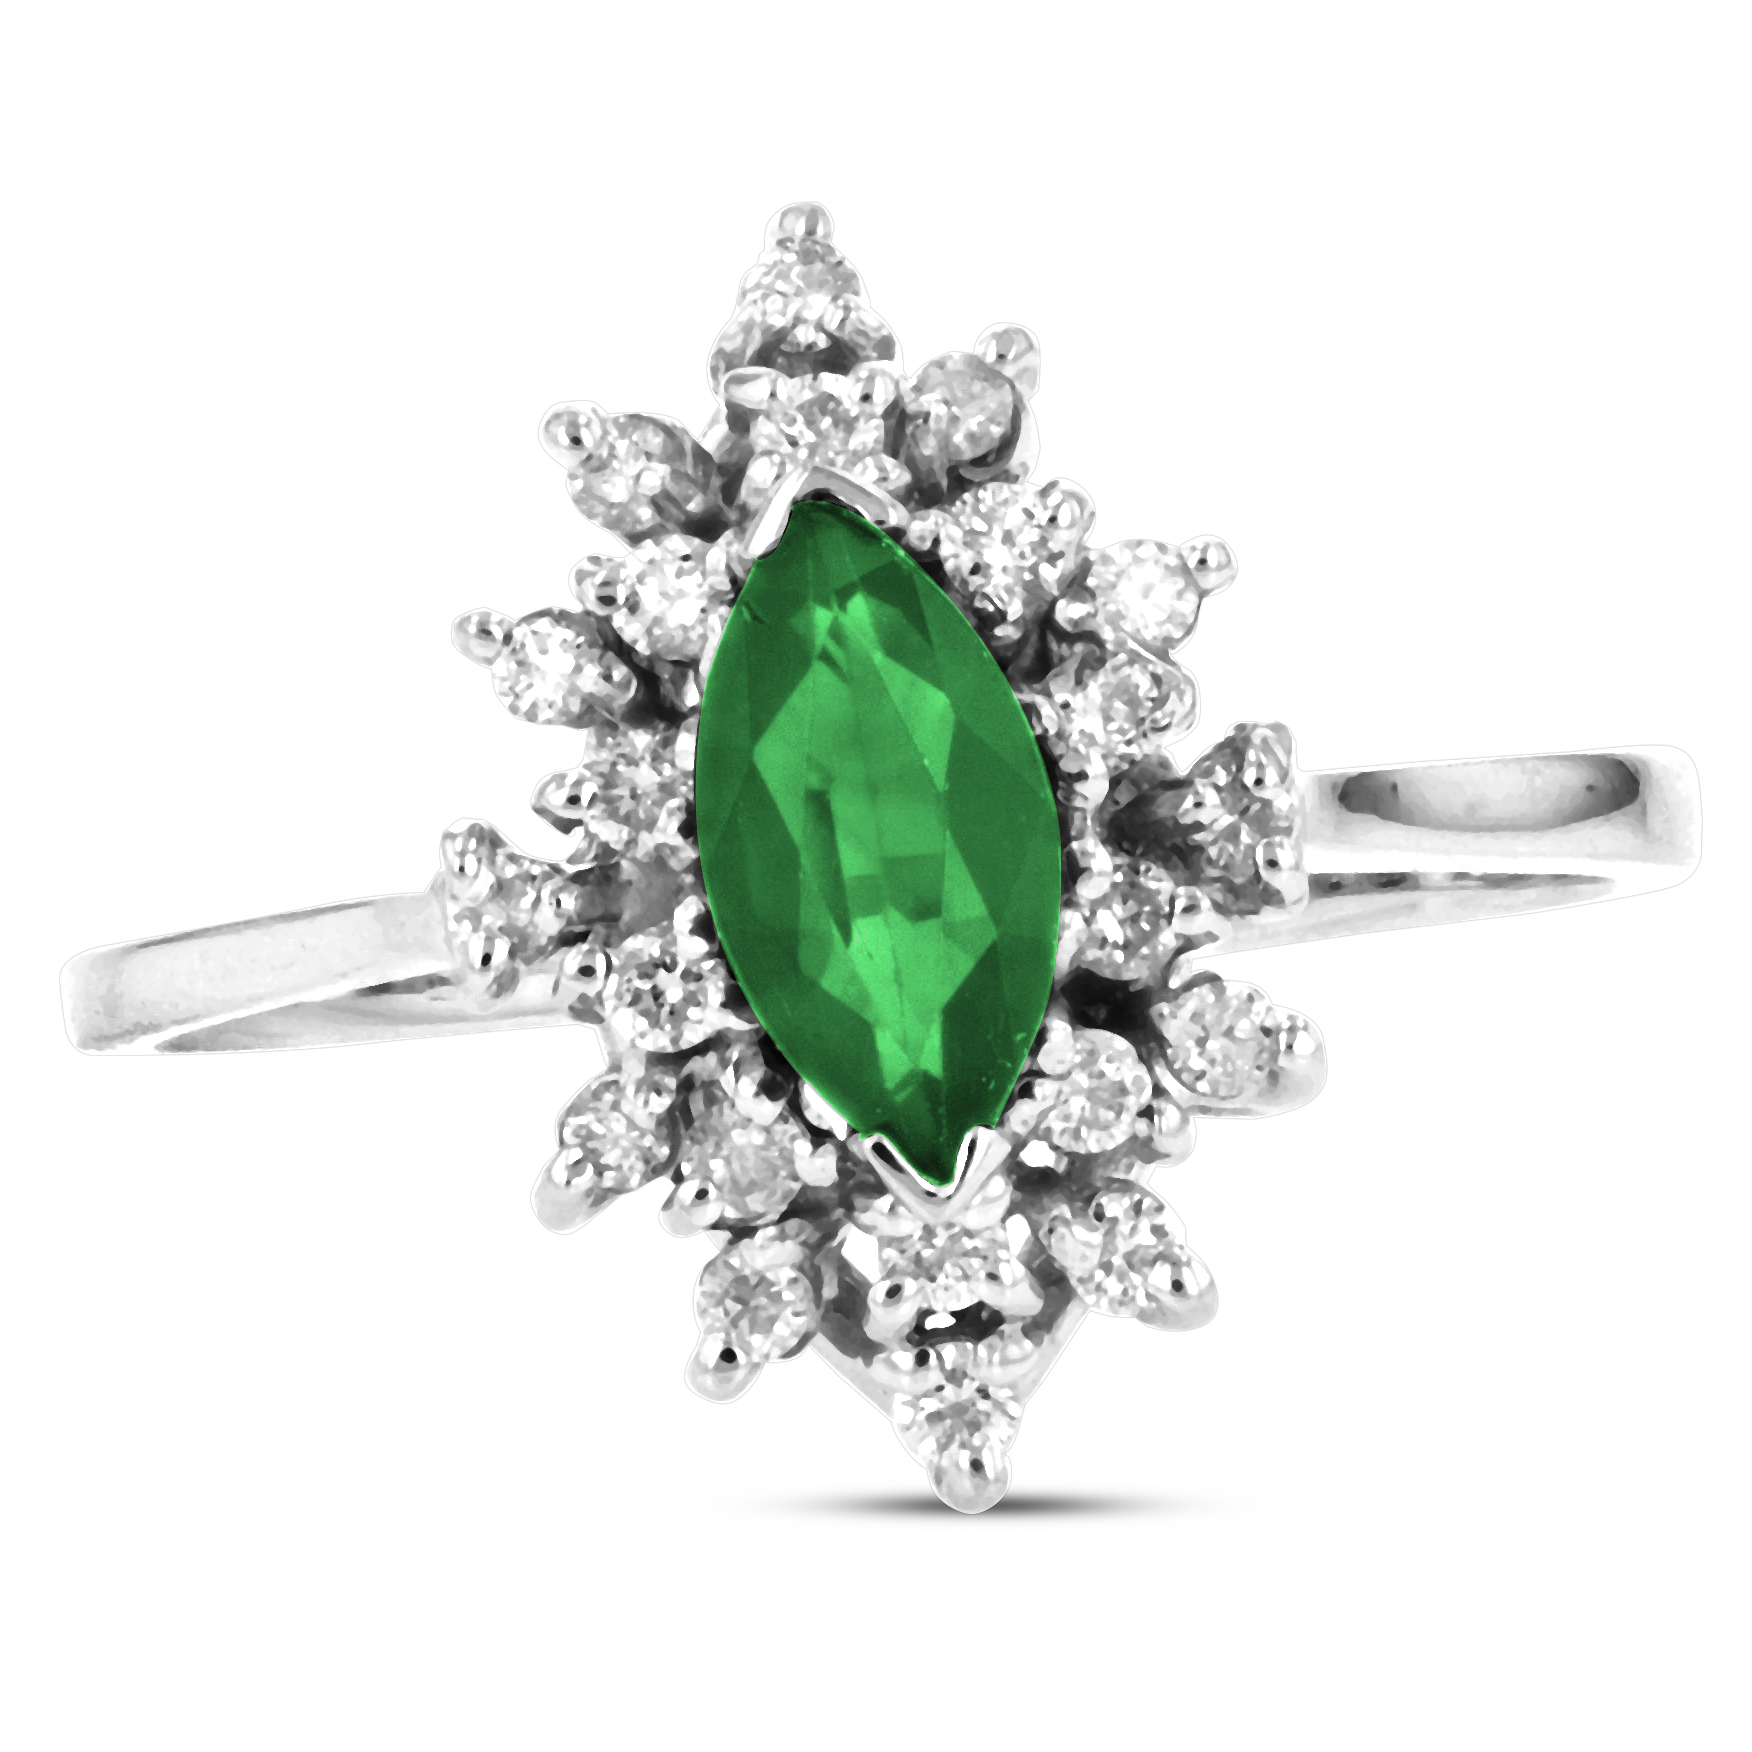 View 0.70ctw Diamond and Marquis Shaped Emerald in 14k White Gold